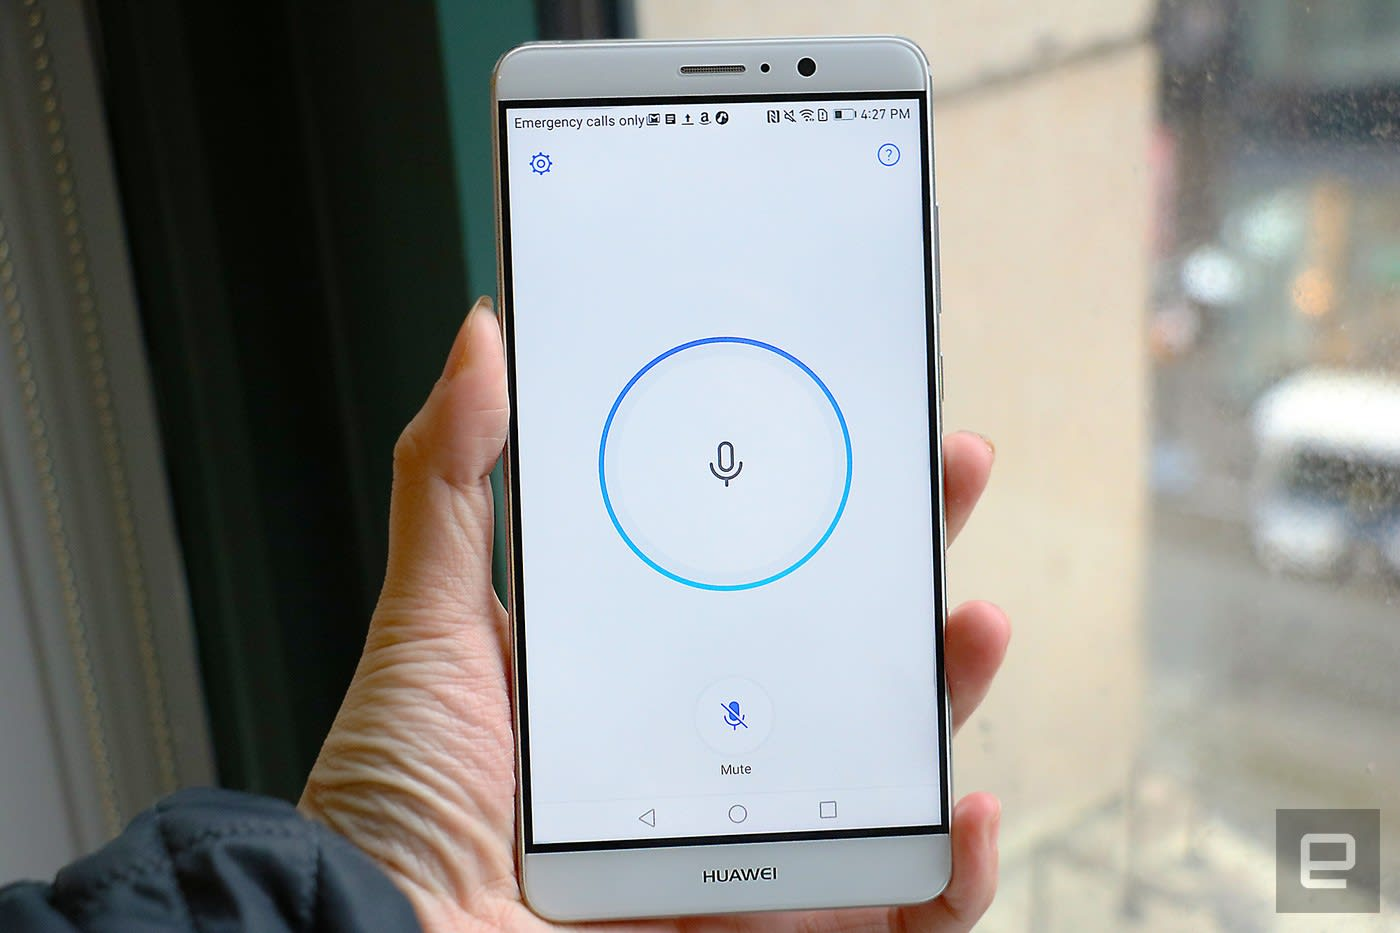 Alexa on the Huawei Mate 9 isn't worth the effort (yet)